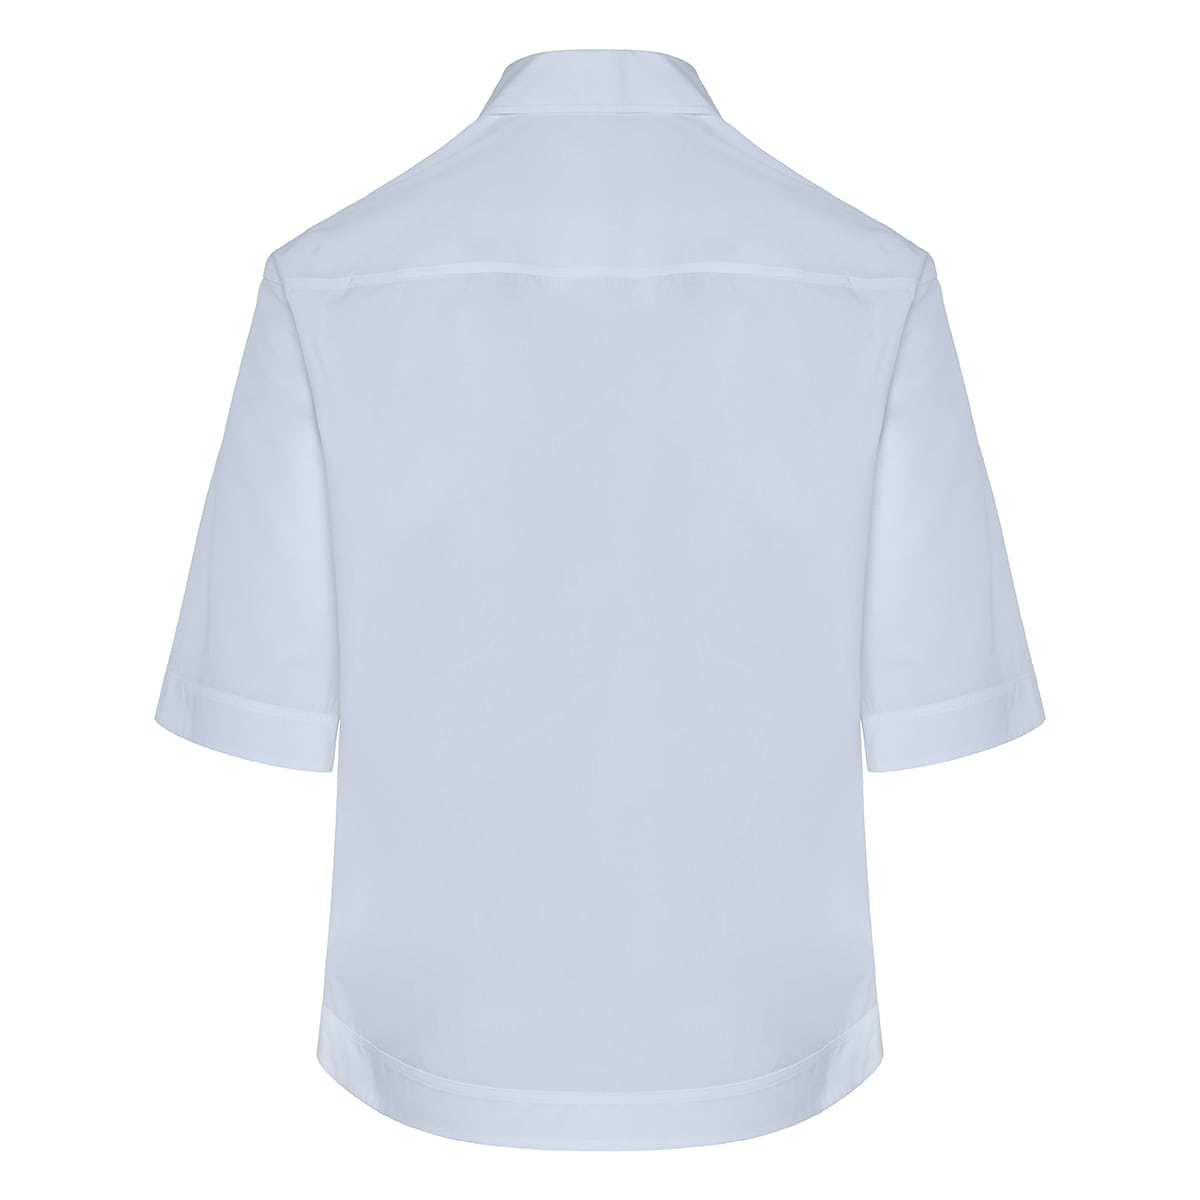 Oversized poplin polo shirt